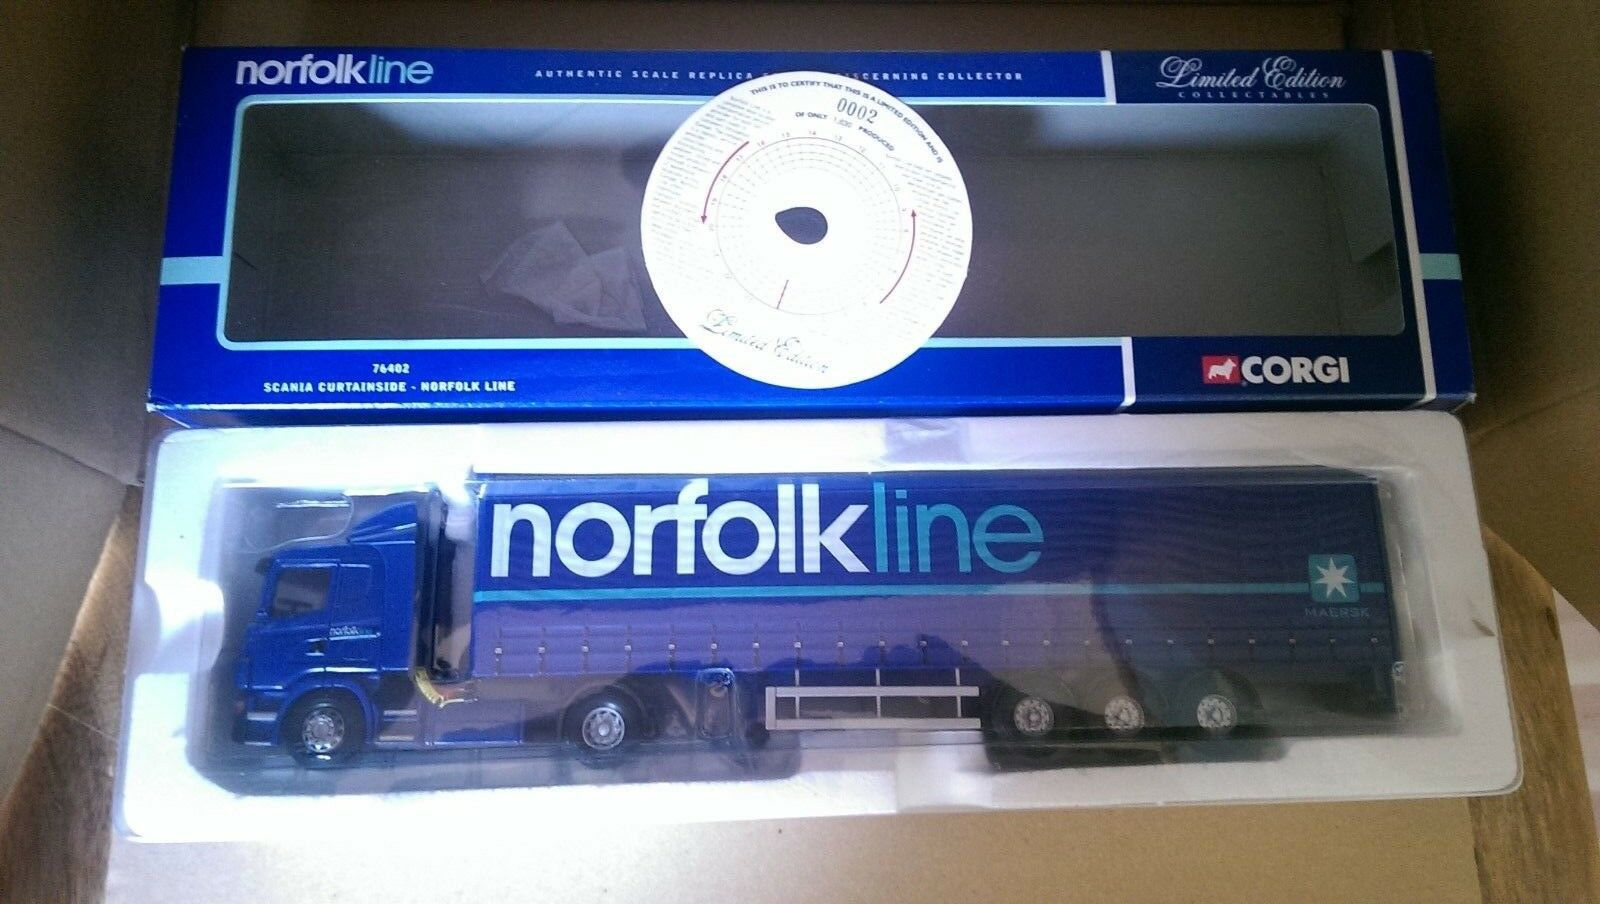 Corgi 76402 scania curtainside norfolk line ltd ausgabe nr. 0001 von 1630